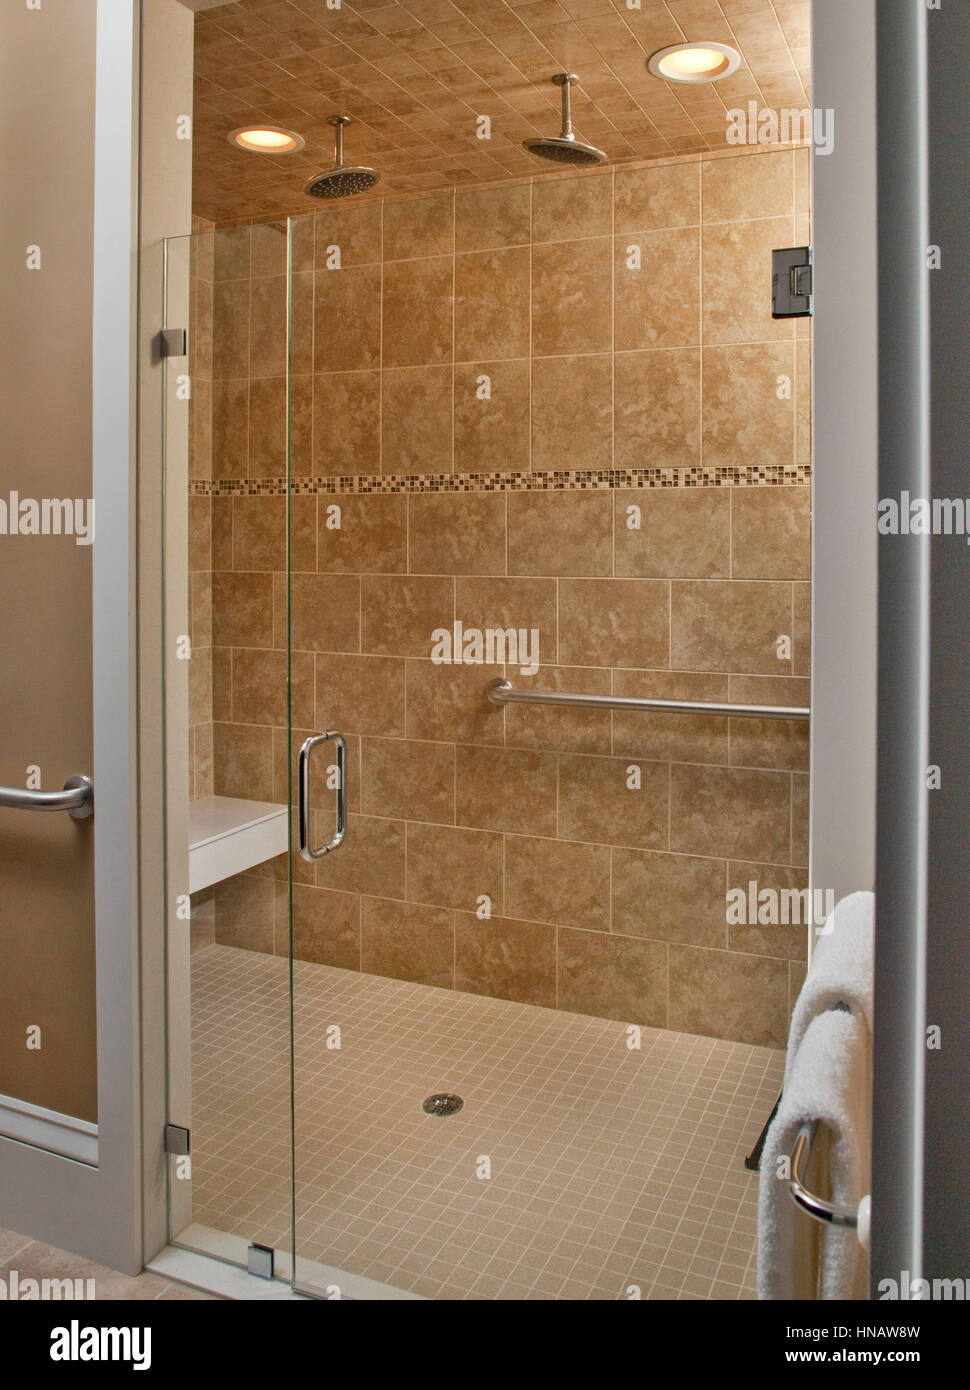 Handicap Shower Stock Photos & Handicap Shower Stock Images - Alamy